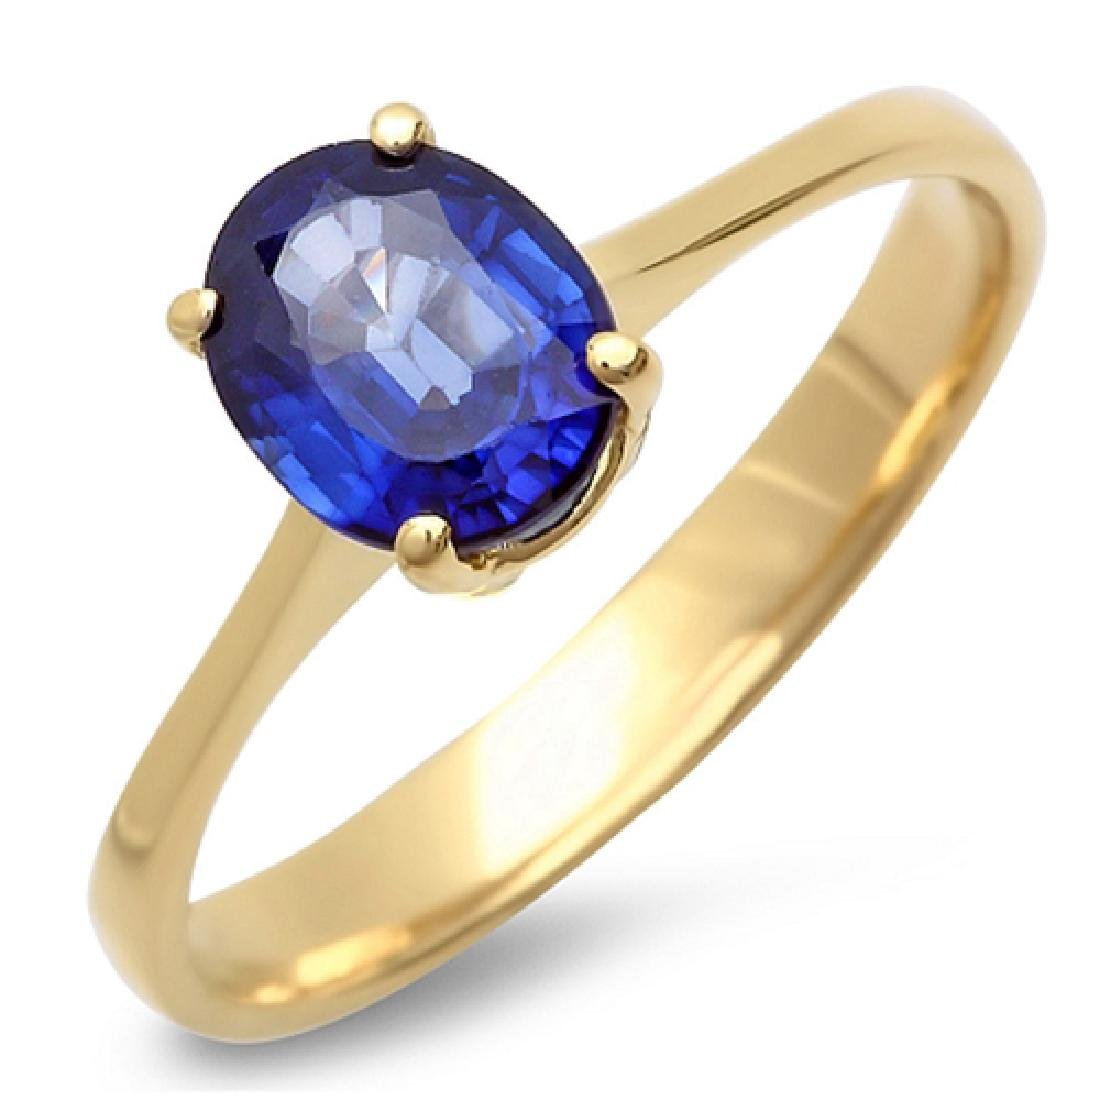 1.20 Carat Natural Sapphire 18K Solid Yellow Gold Ring